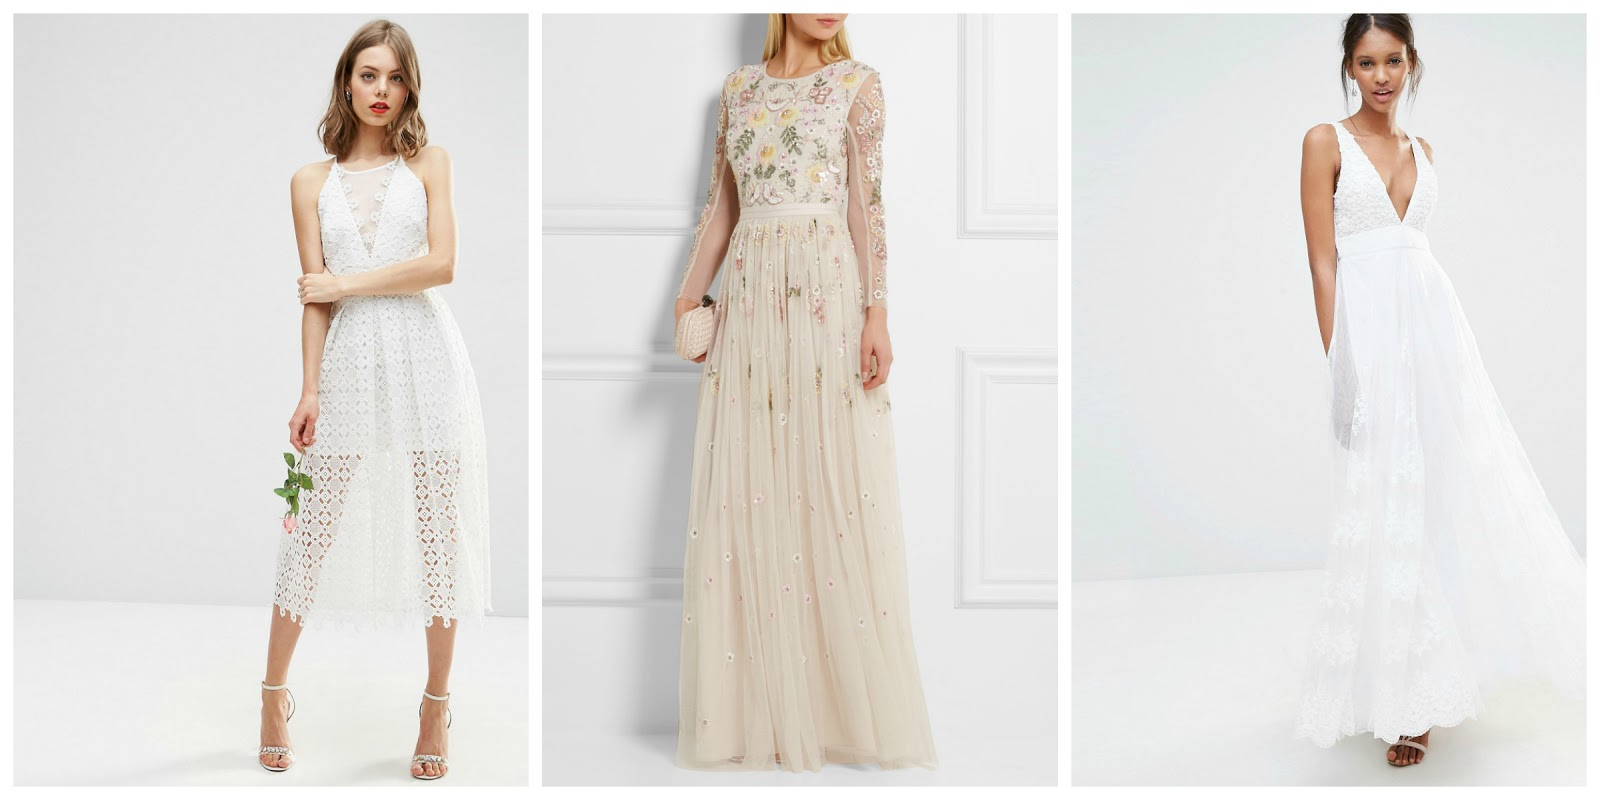 BEST WEDDING DRESSES AVAILABLE ON THE HIGH STREET